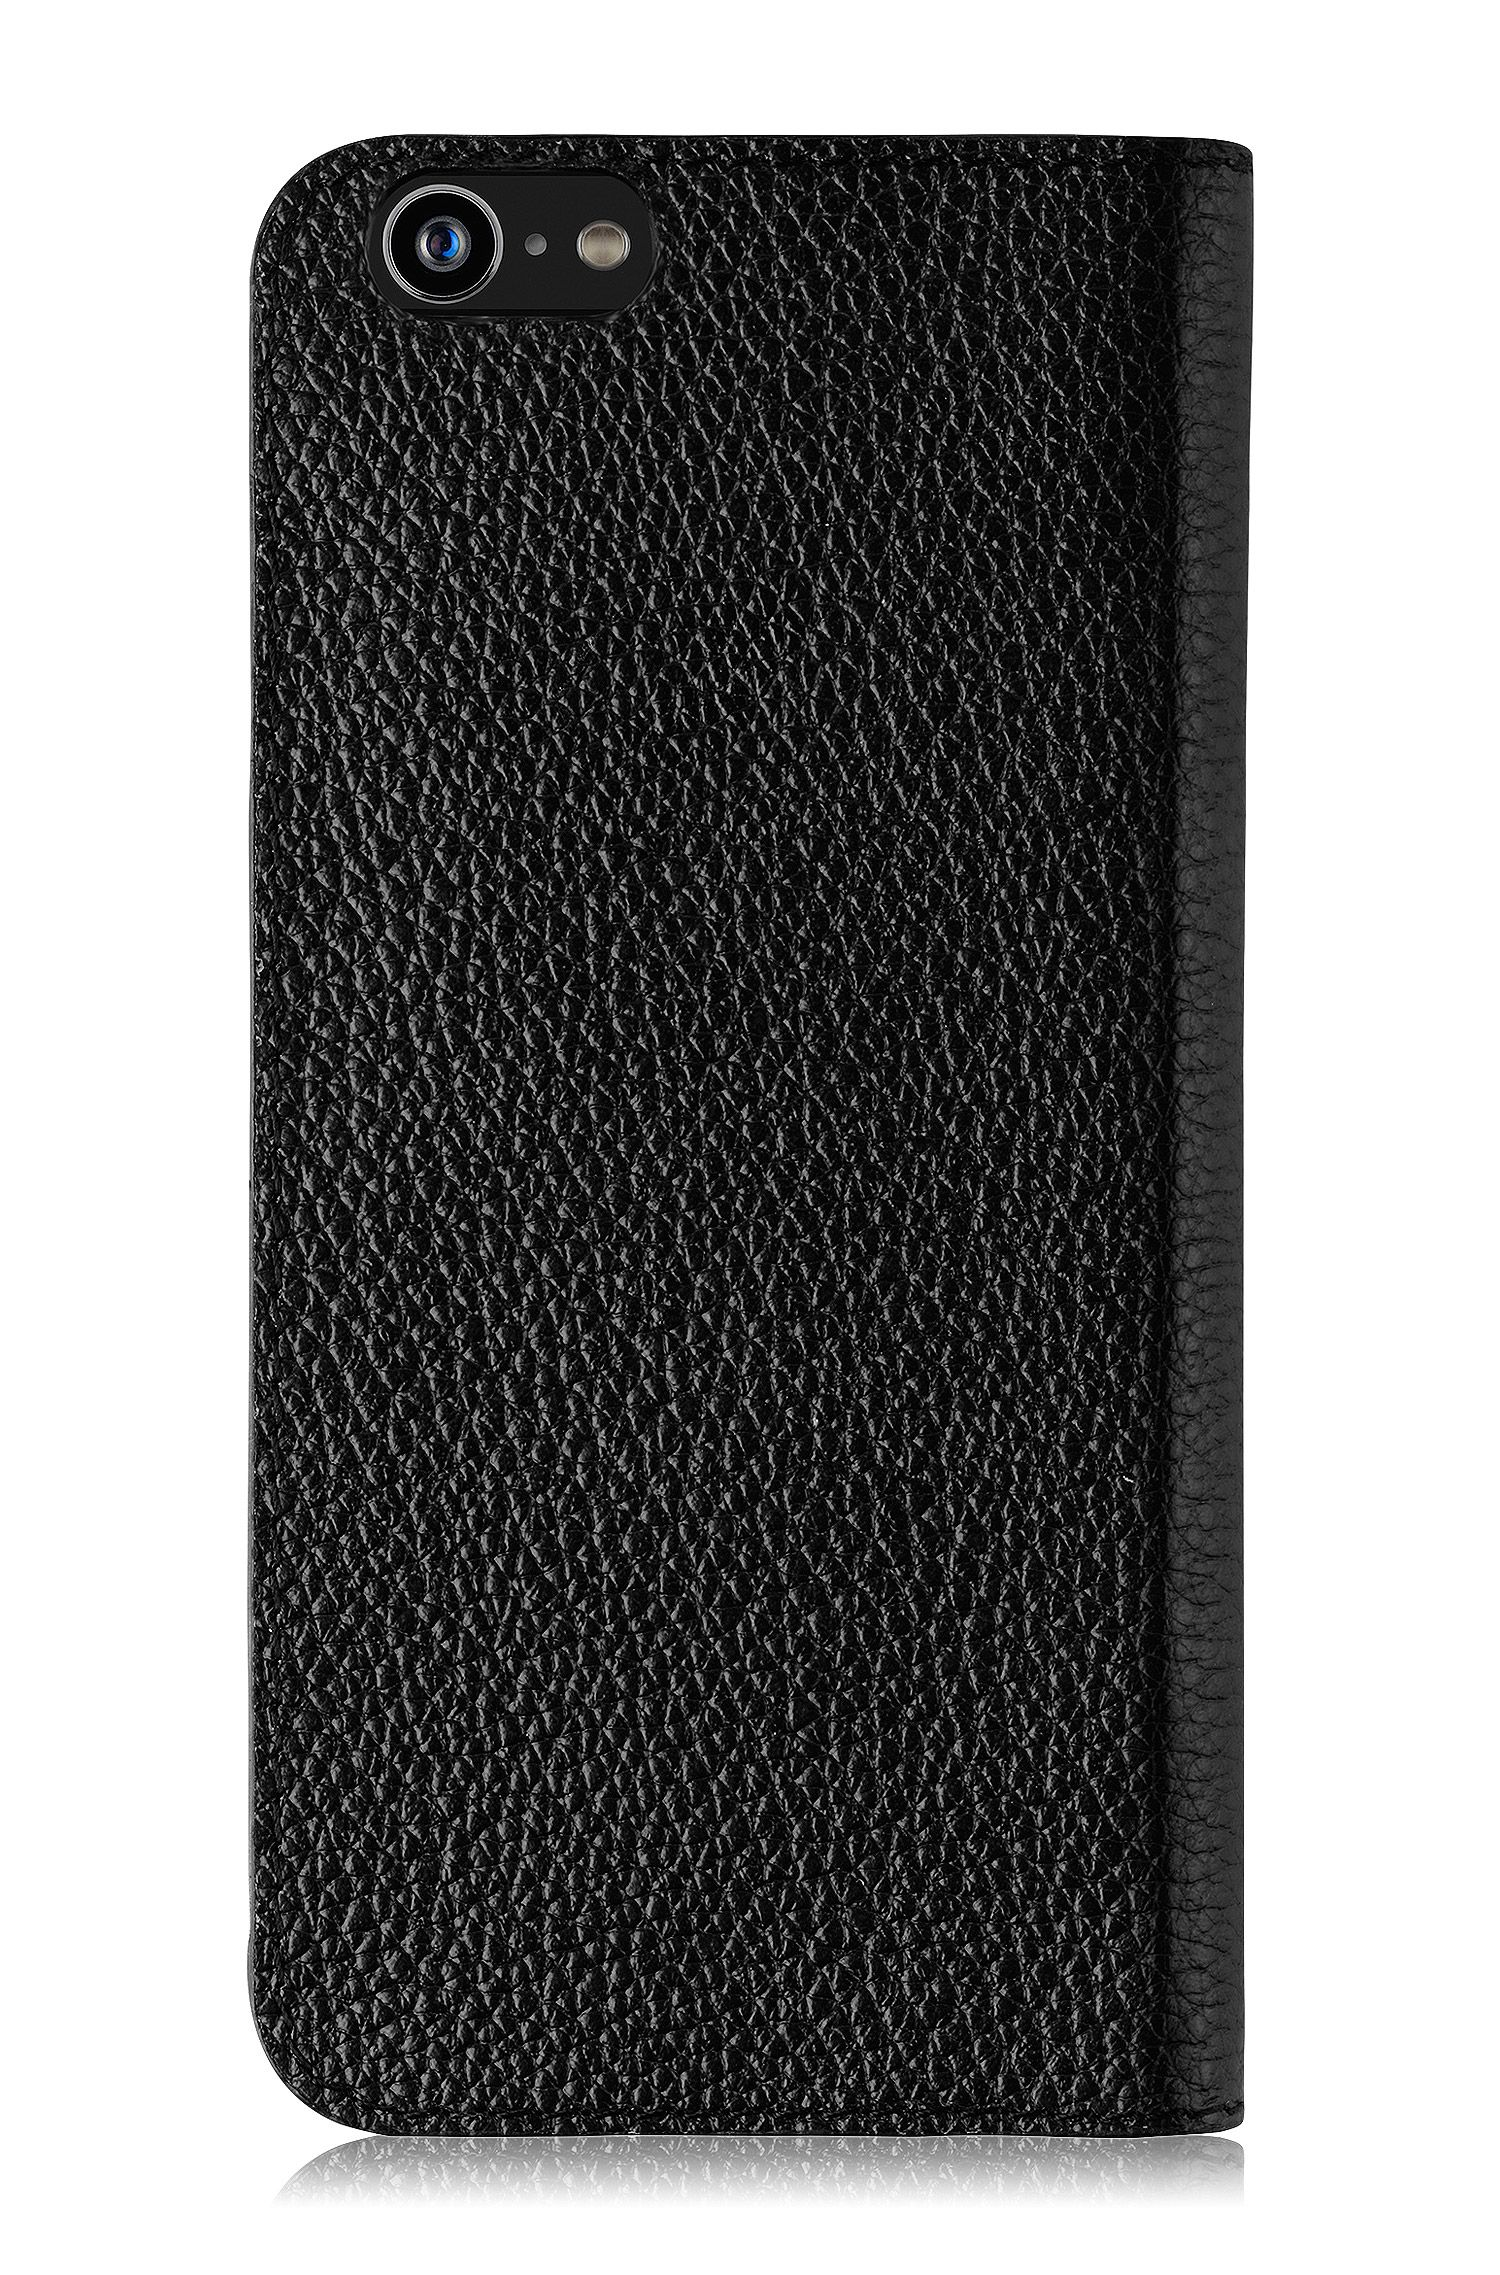 Booklet Case ´Folianti IP6 4.7` aus Leder für iPhone 6 4.7